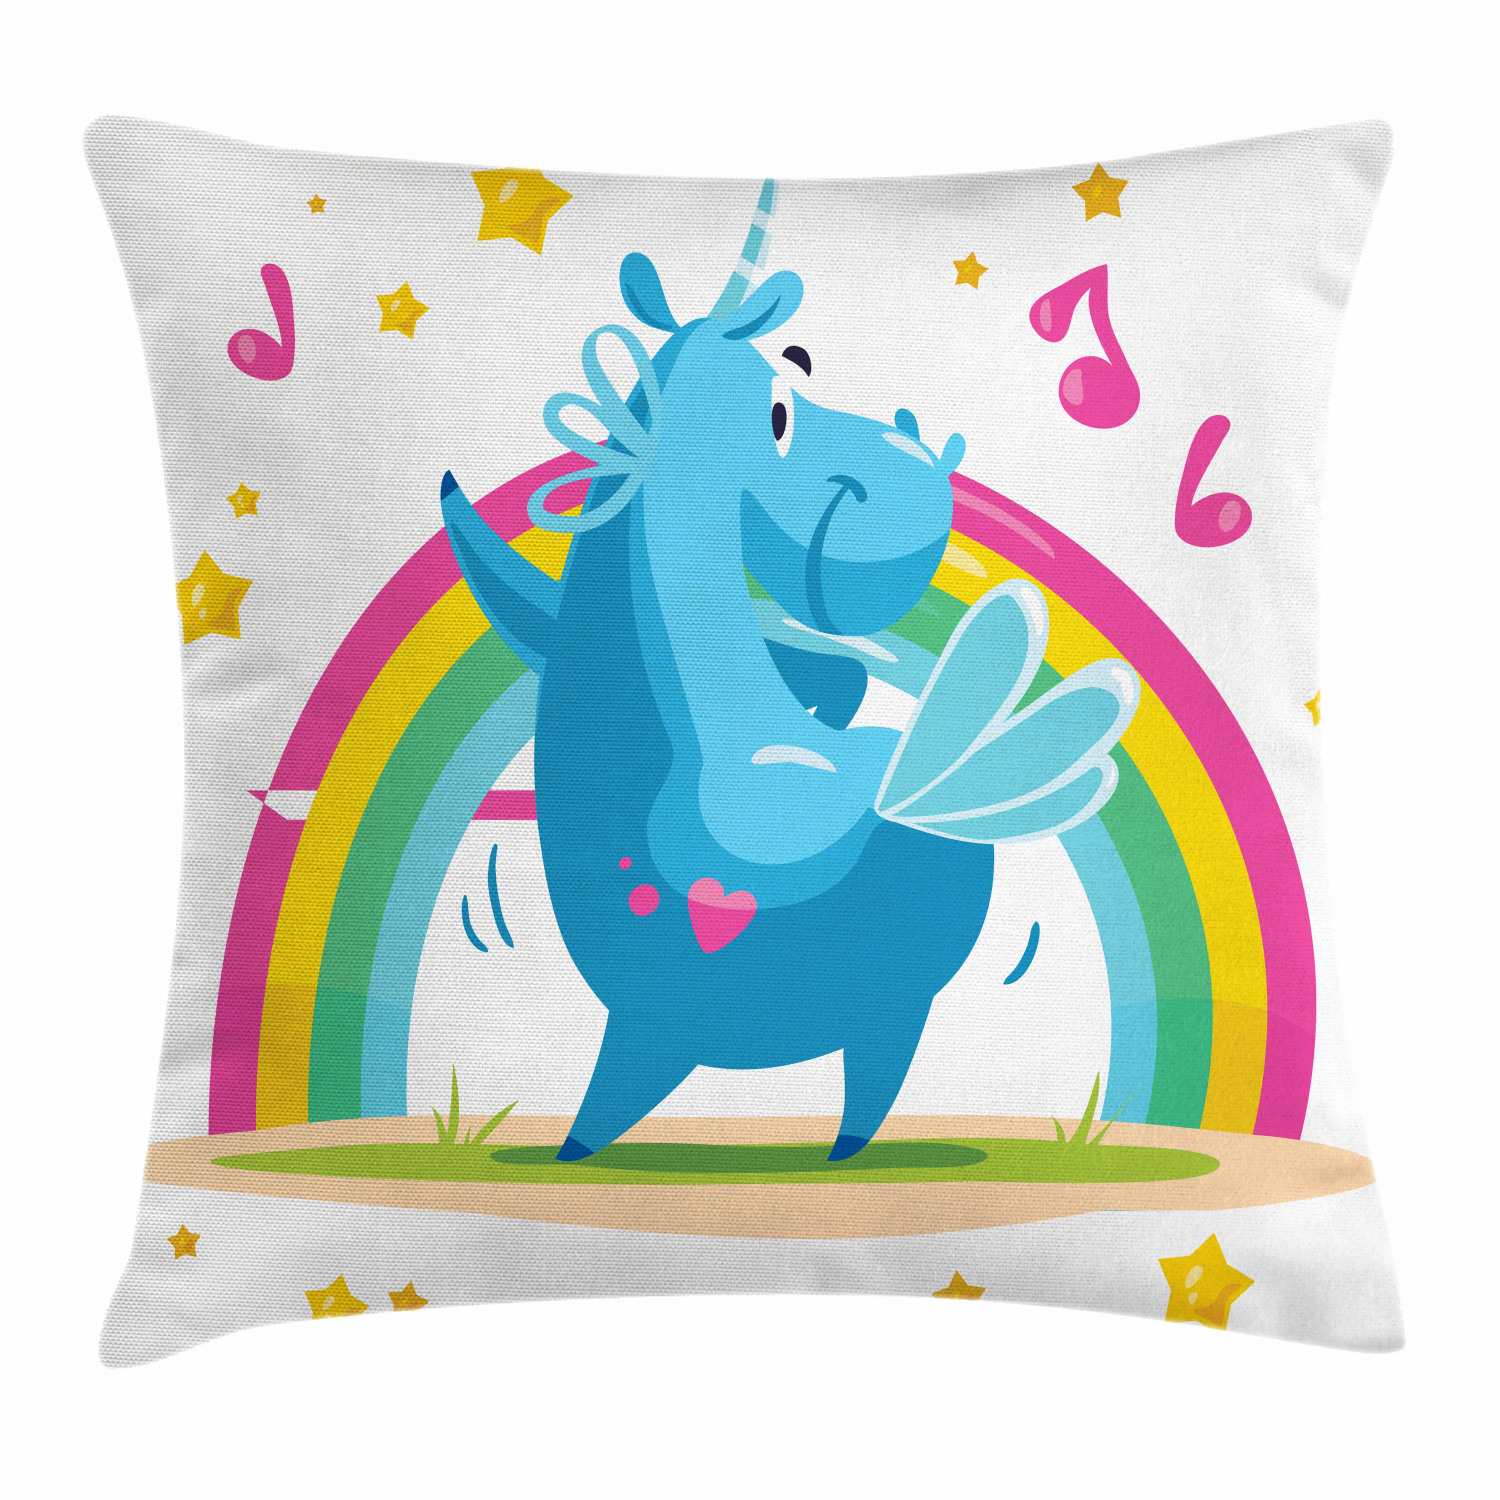 Unicorn Throw Pillow Cases Cushion Covers by Ambesonne Accent Decor 8 Sizes